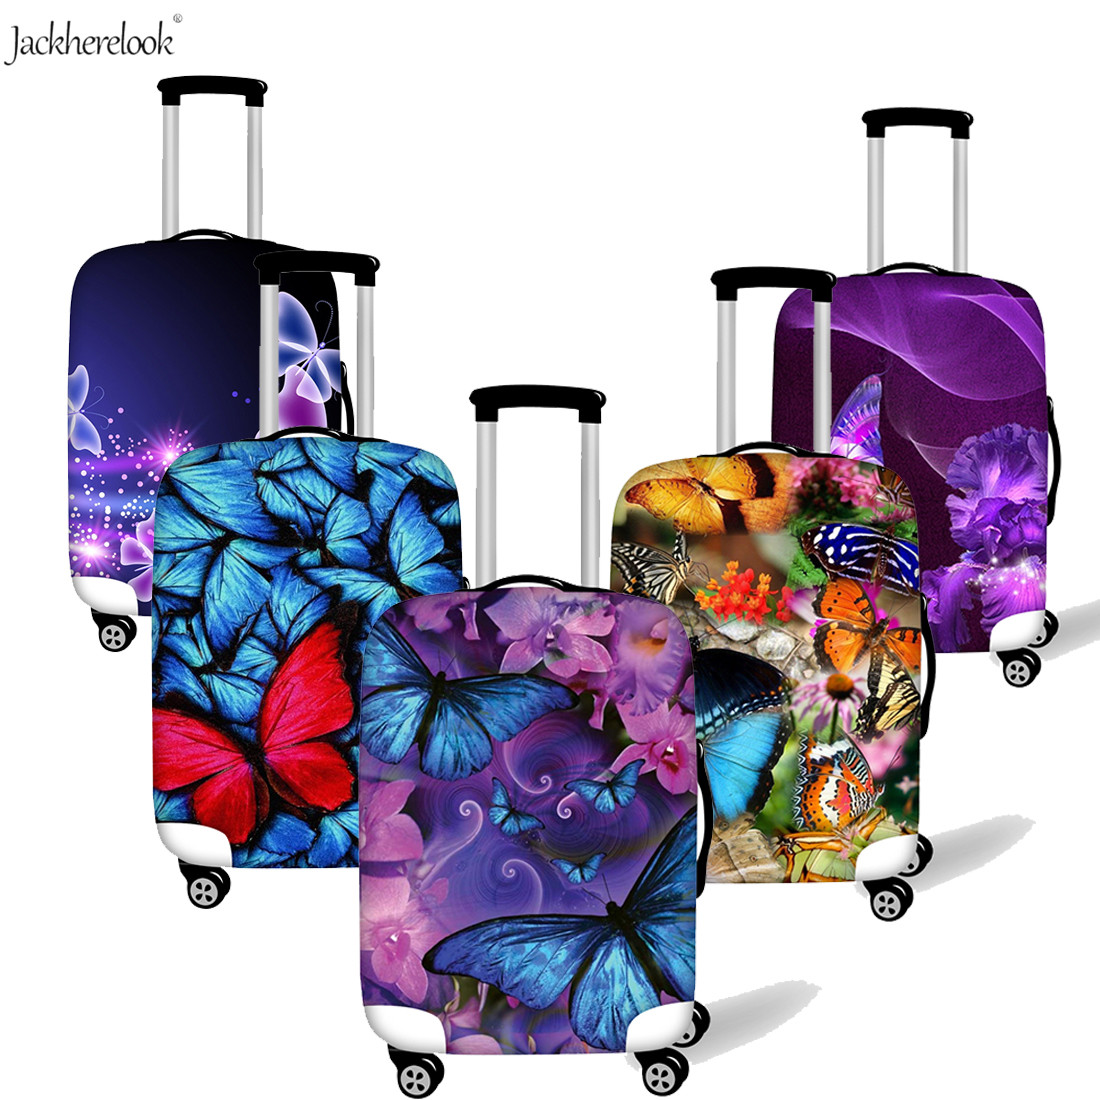 Jackherelook 3D Purple Blue Butterfly Print Luggage Bag Cover Outdoor Trolley Suitcase Baggage Protect Case Water/Dirty Proof